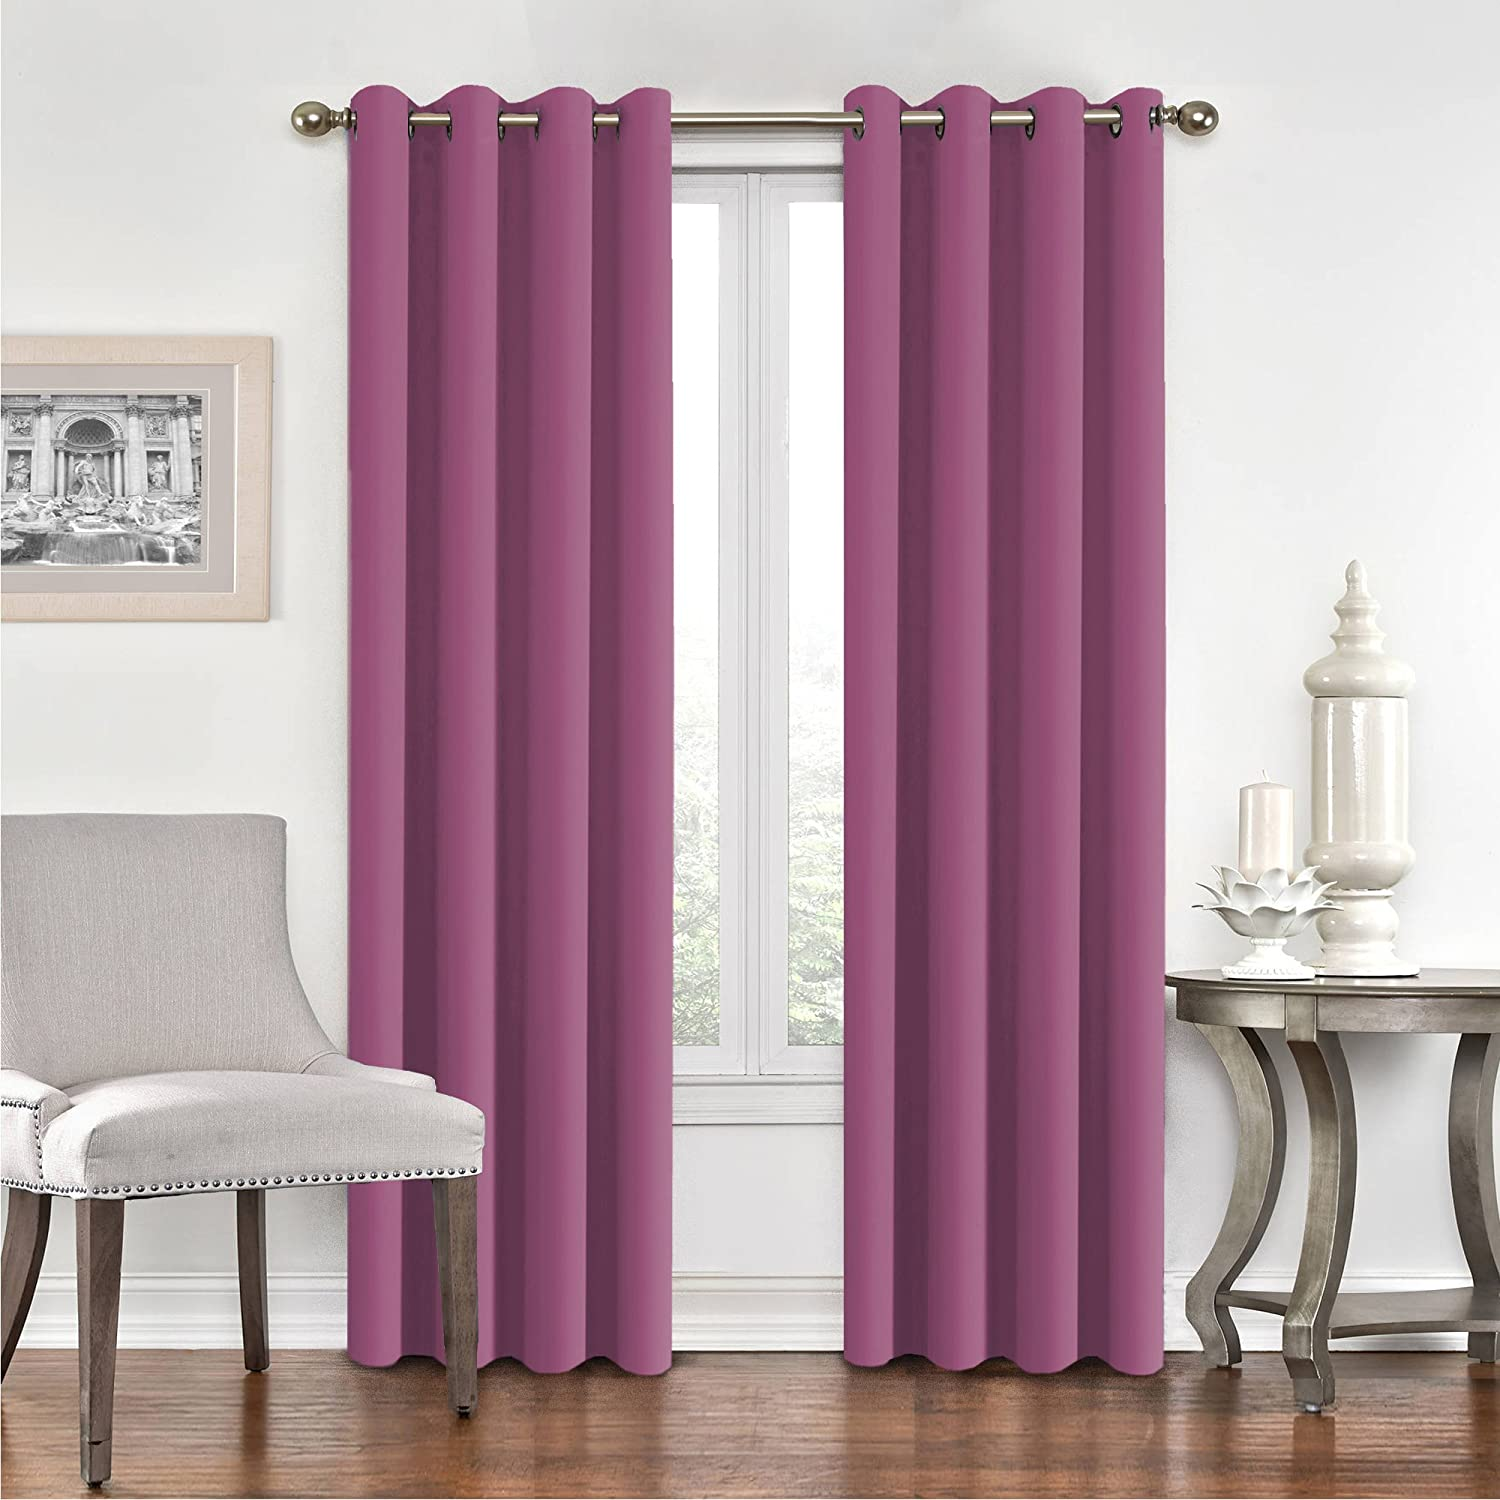 FlamingoP Room Darkening Grommet Top Multiple Sizes Microfiber Solid Color Blackout Thermal Insulated Curtain/Drape